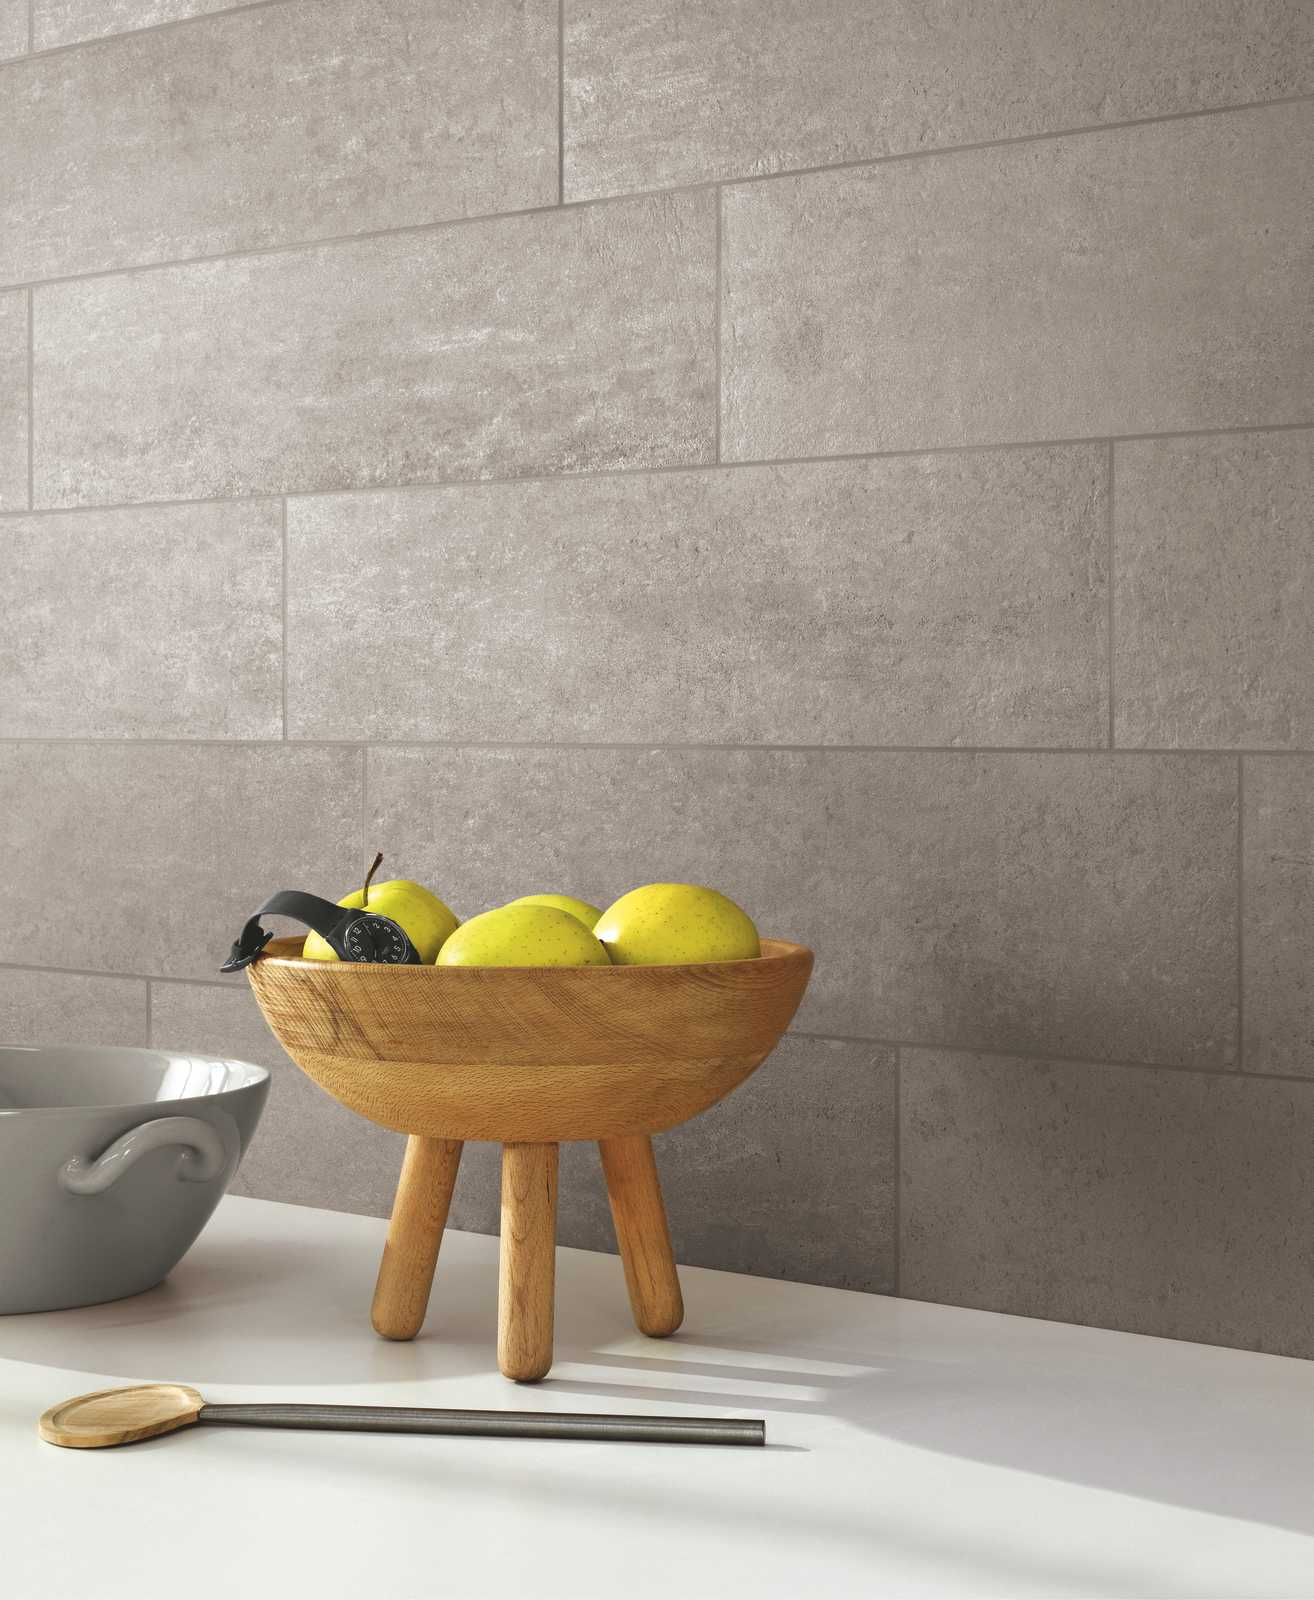 concept ceramic tiles ragno_4373